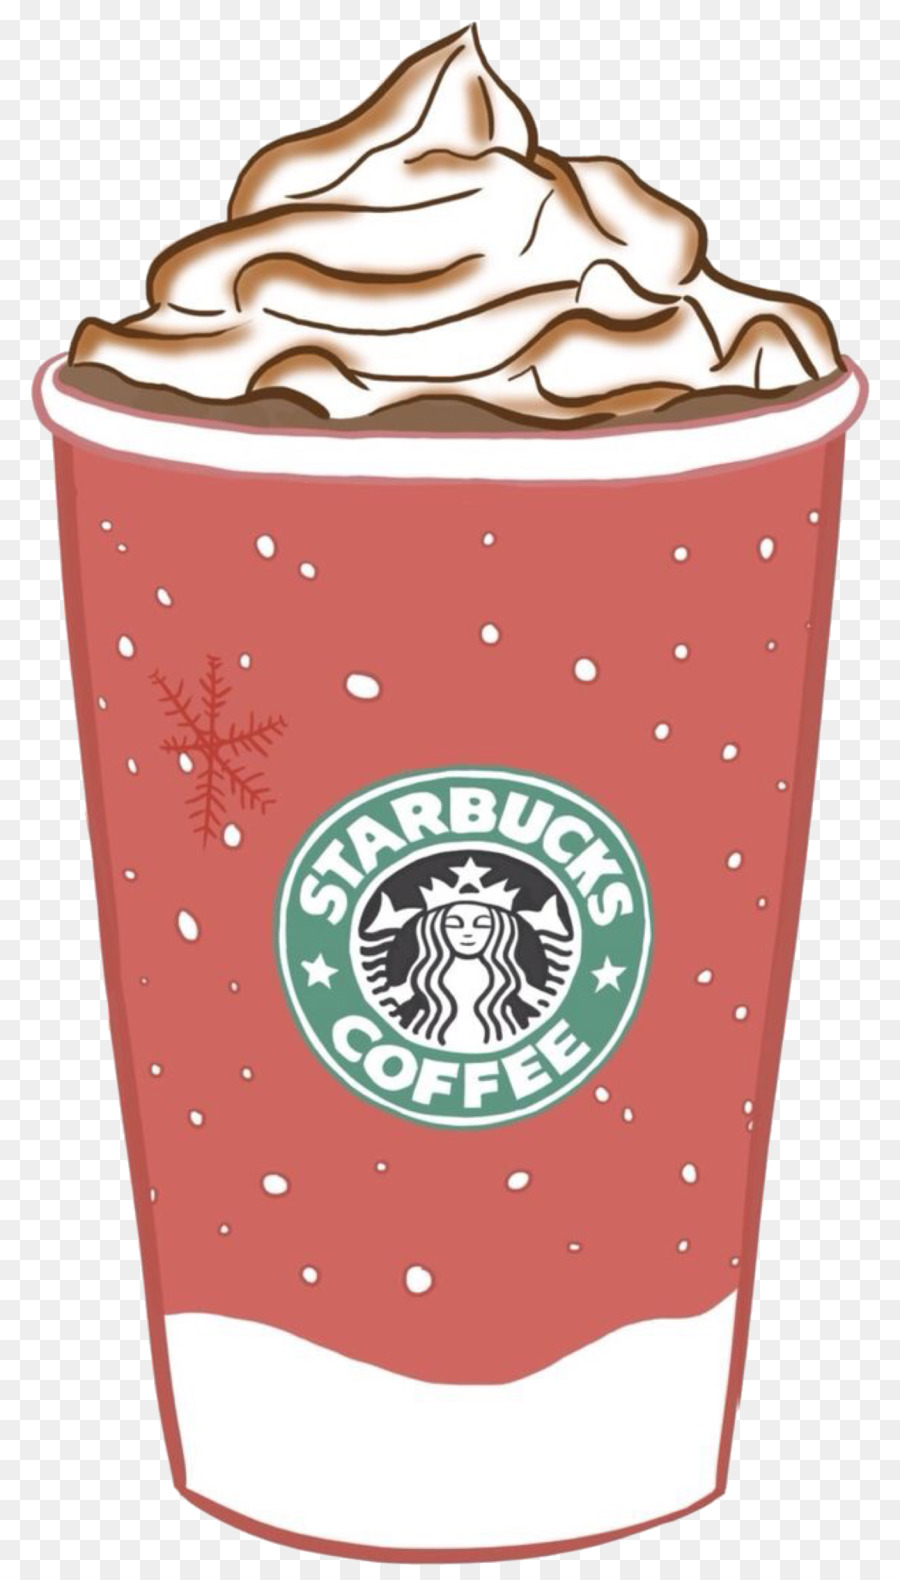 Starbucks Cup Background png download - 1167*2048 - Free